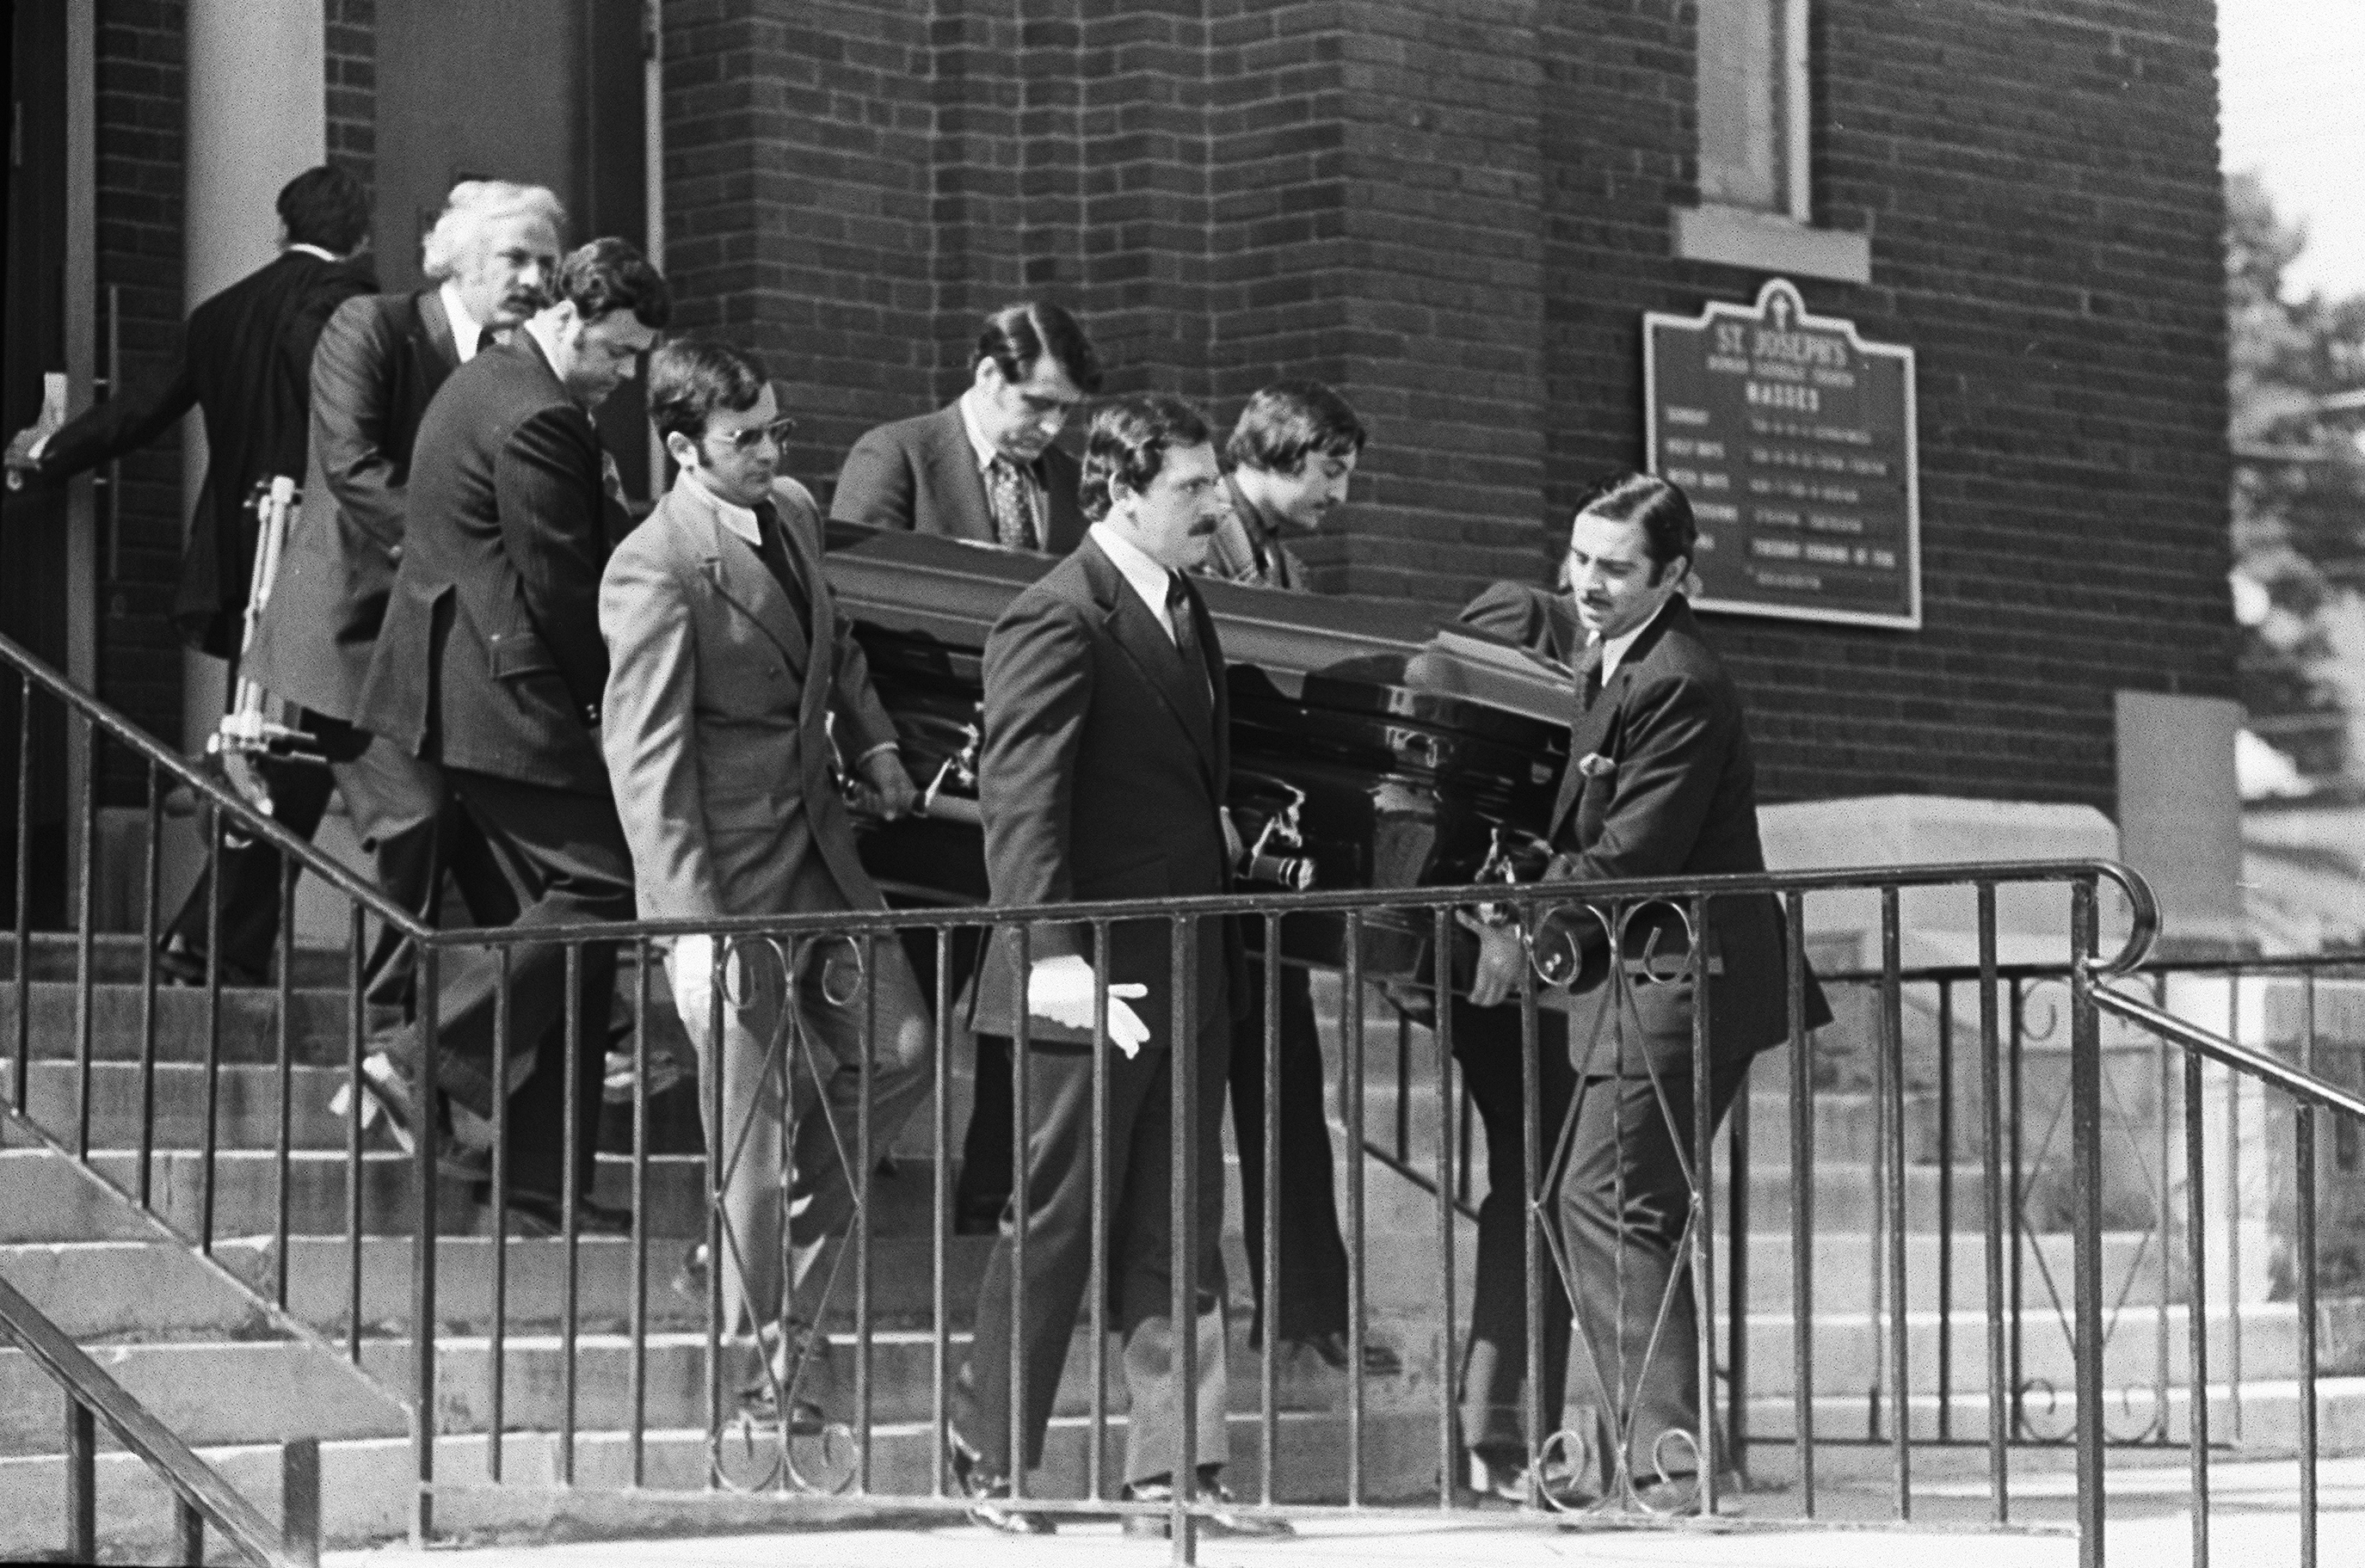 "Pallbearers carry the casket of Stefano Magaddino out of St. Joseph's Church in Niagara Falls in July 1974. ""He was a good family man, loved by a lot of people, but he was also a killer,"" said retired mob investigator George E. Karalus. (Mickey Osterreicher/Special to The News"